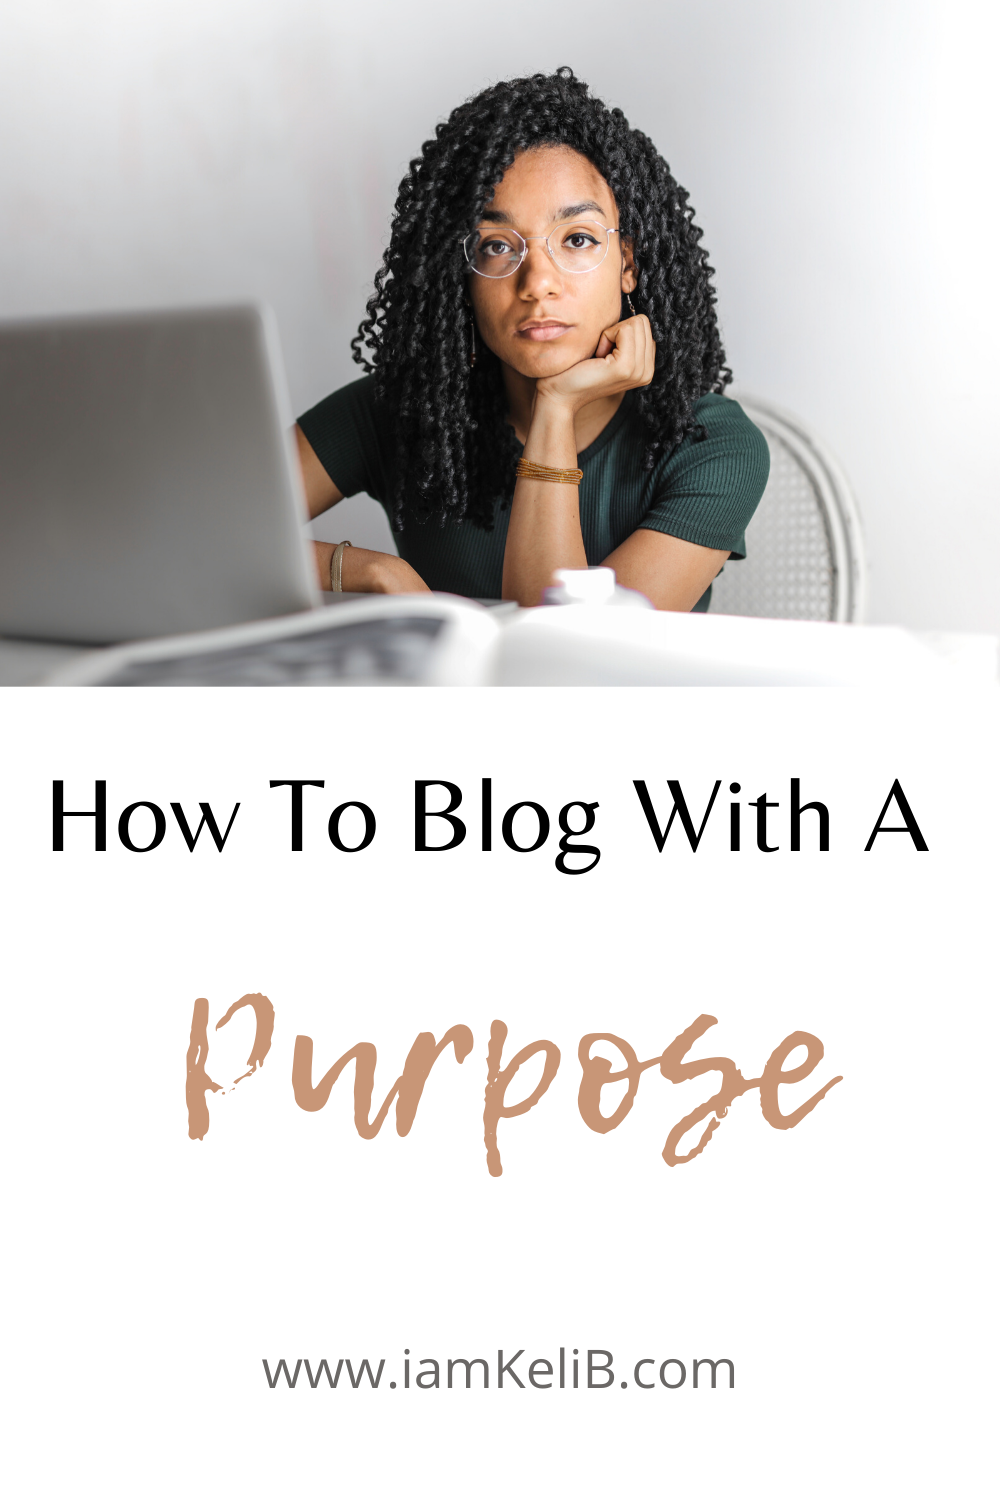 How To Blog With A Purpose